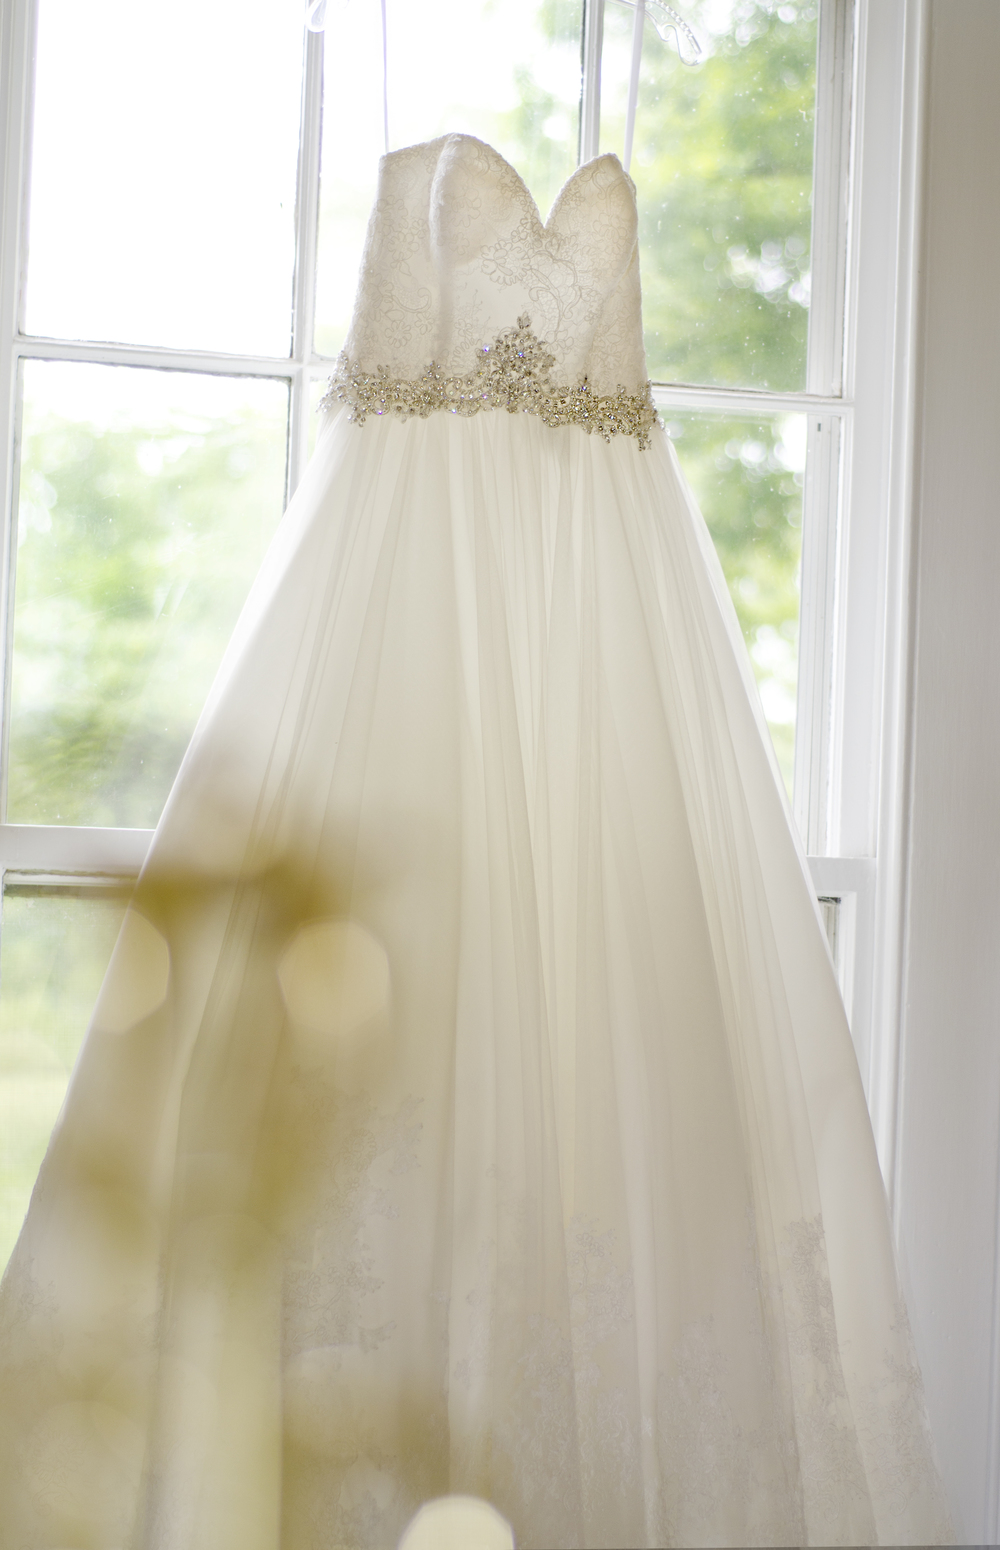 wedding gown in window - farm wedding - copyright